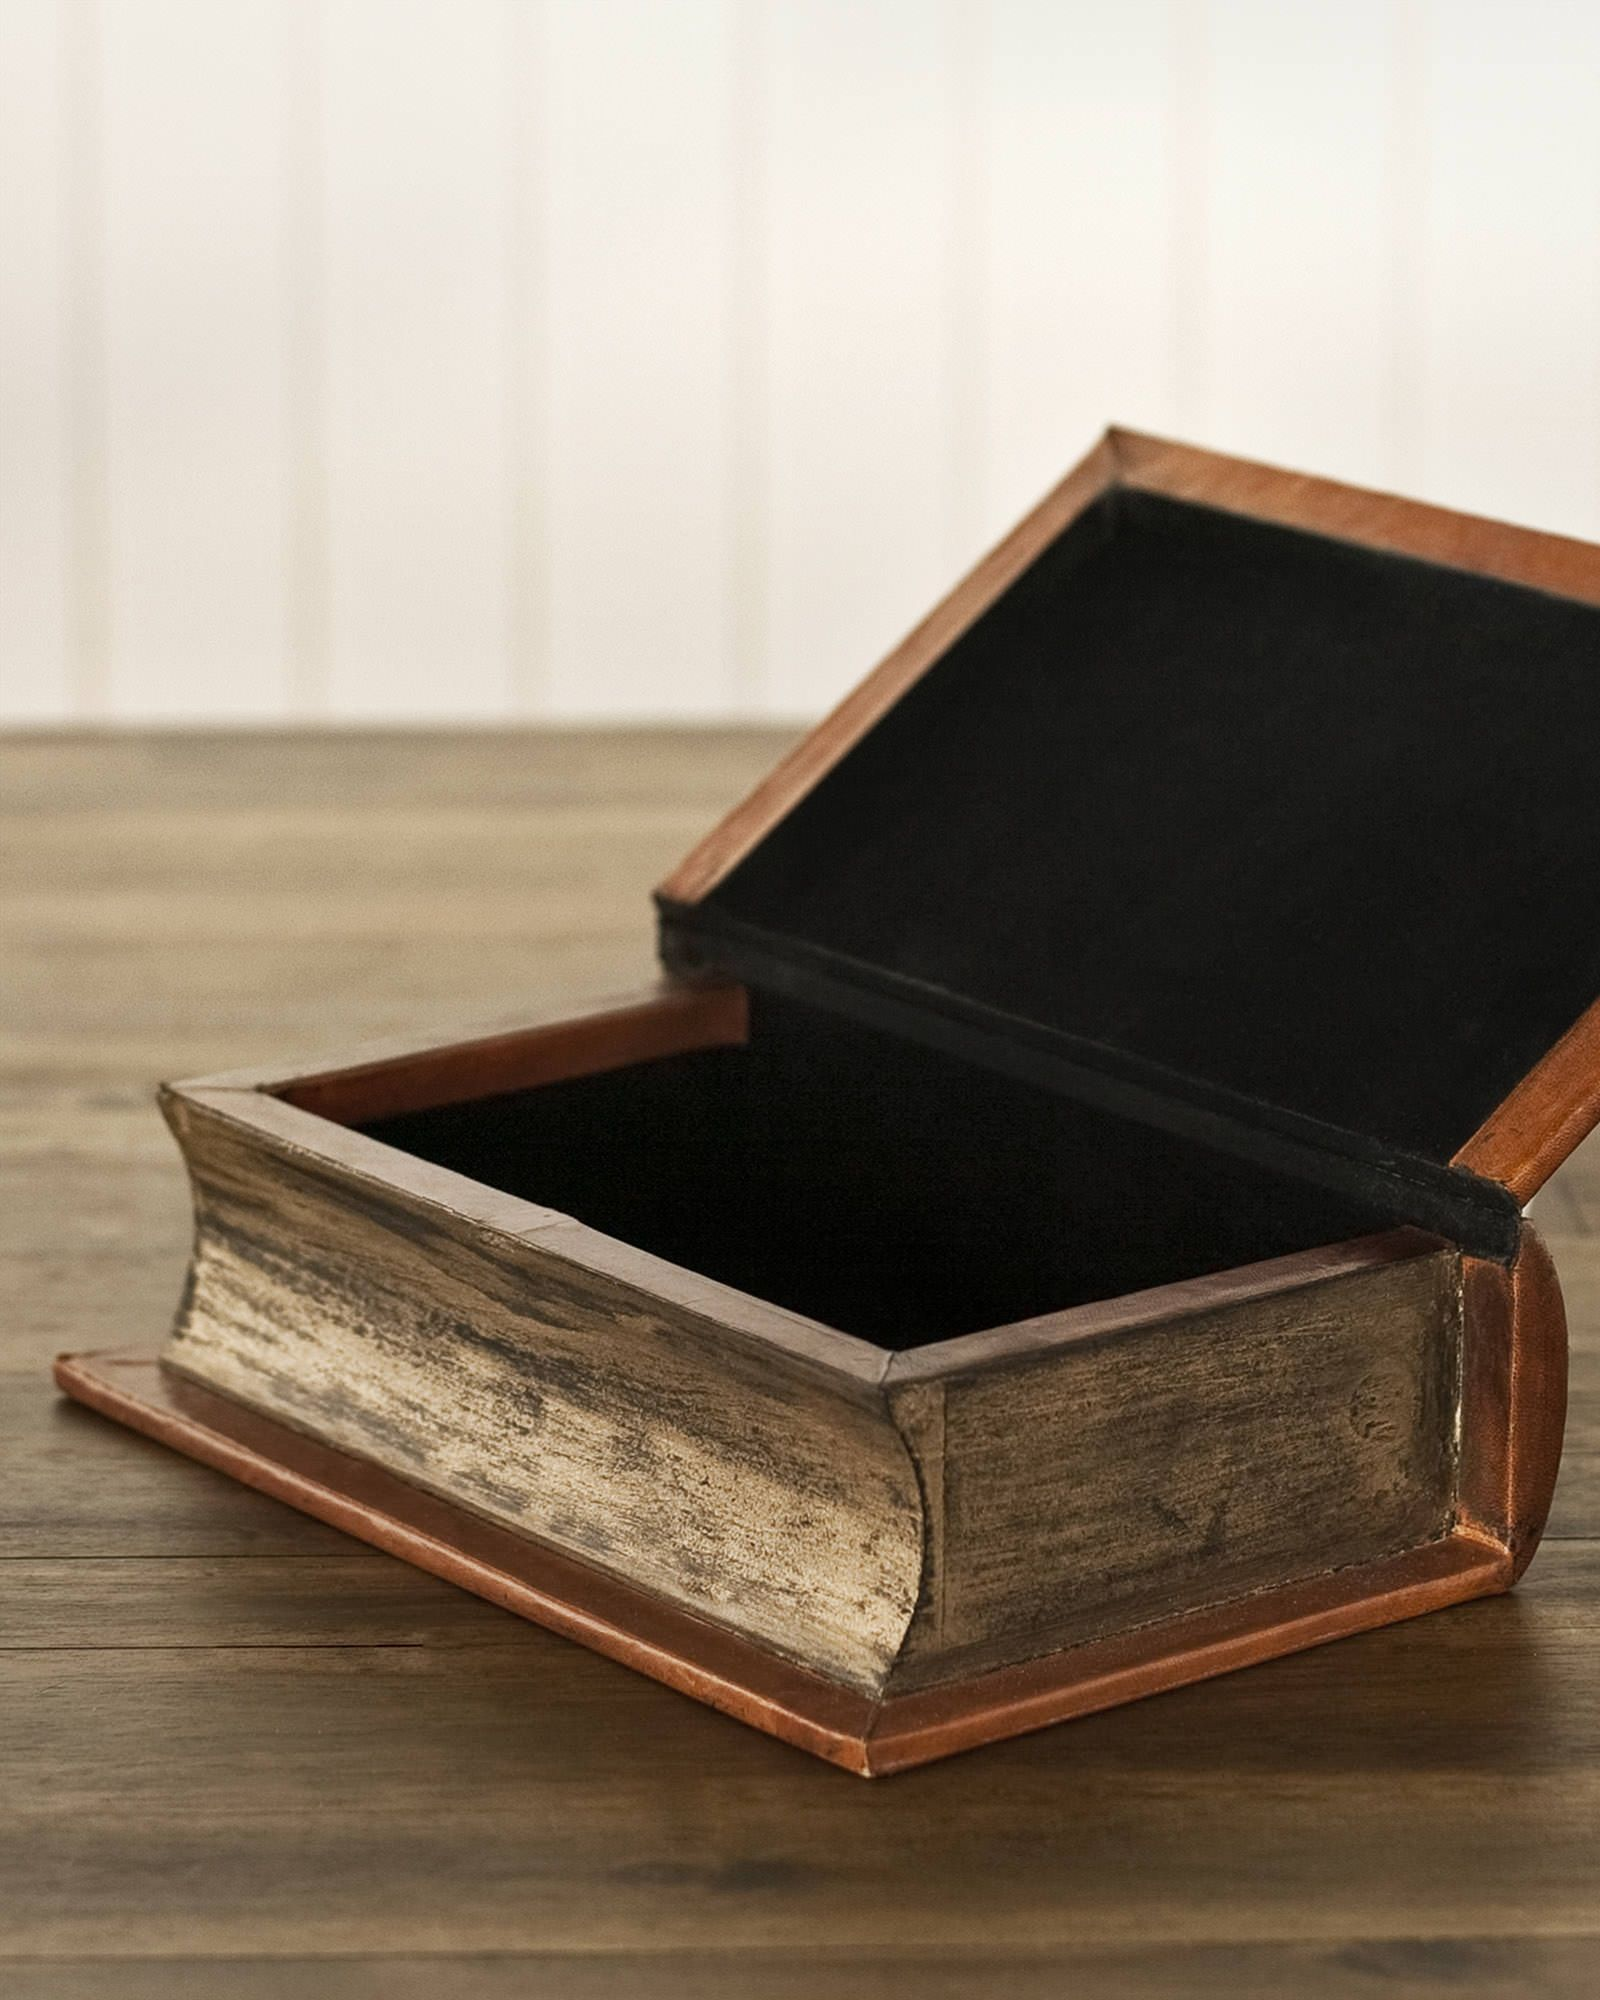 Leather Book Safe Box Brown Balsam Hill Safe Box Leather Books Christmas Collectibles